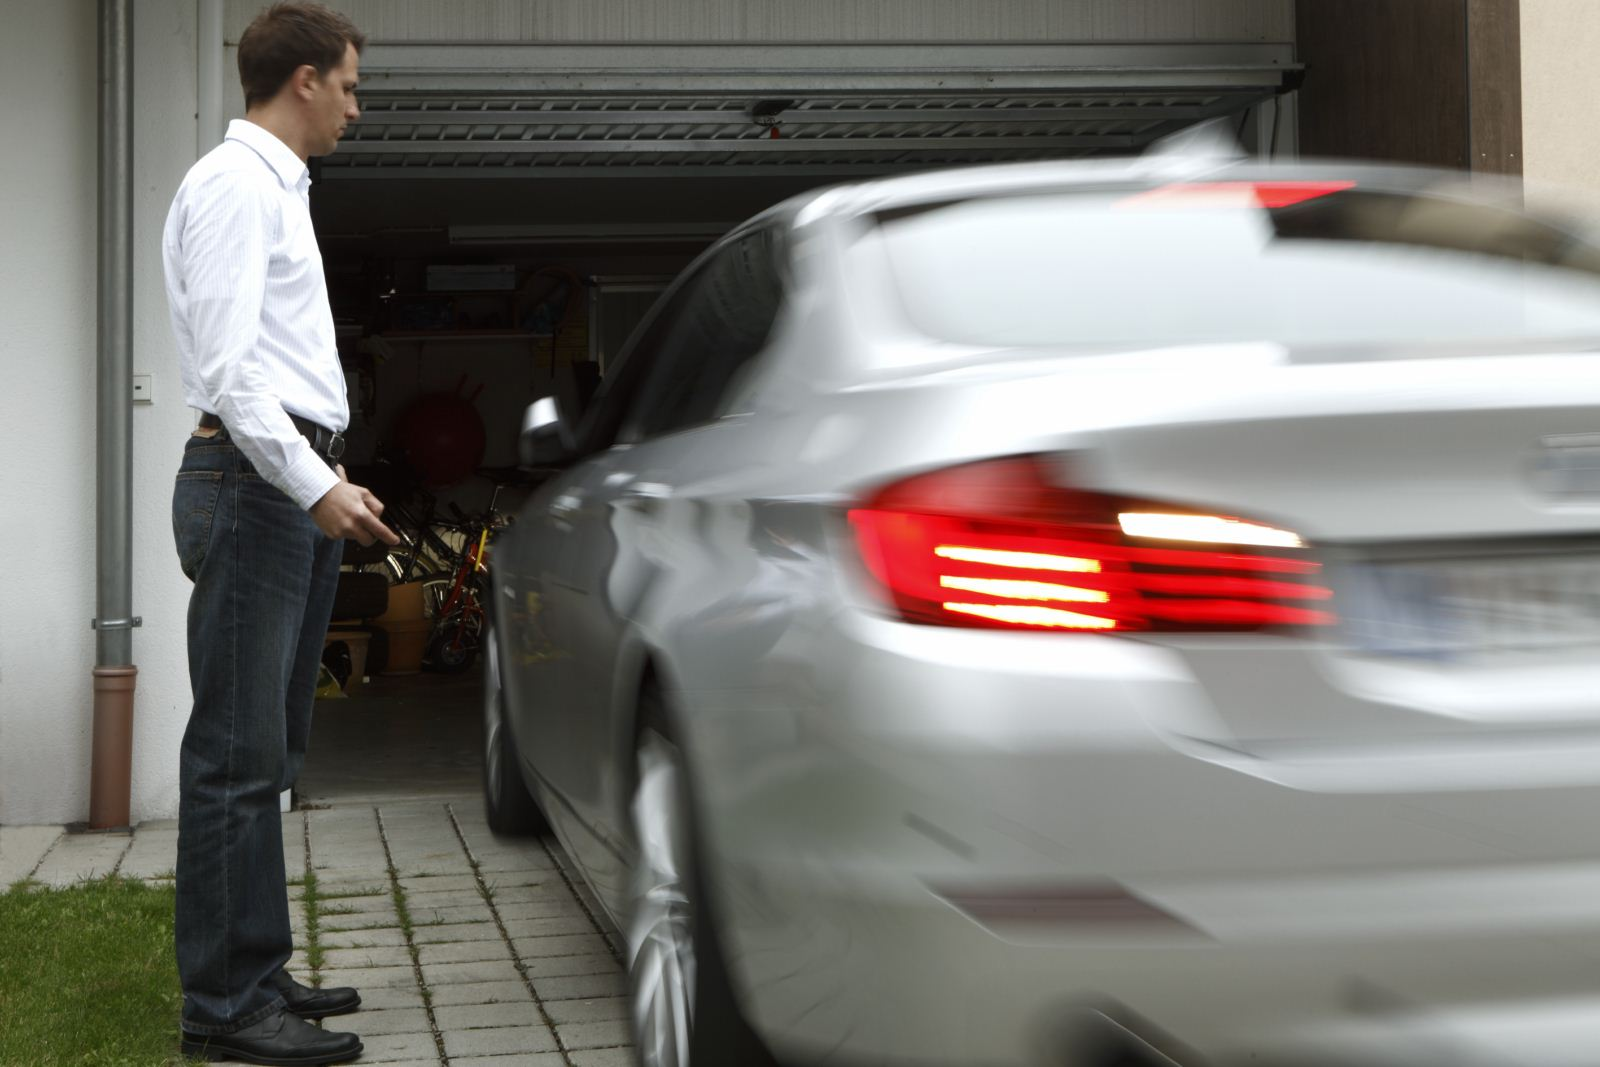 bmw remote controlled parking 5